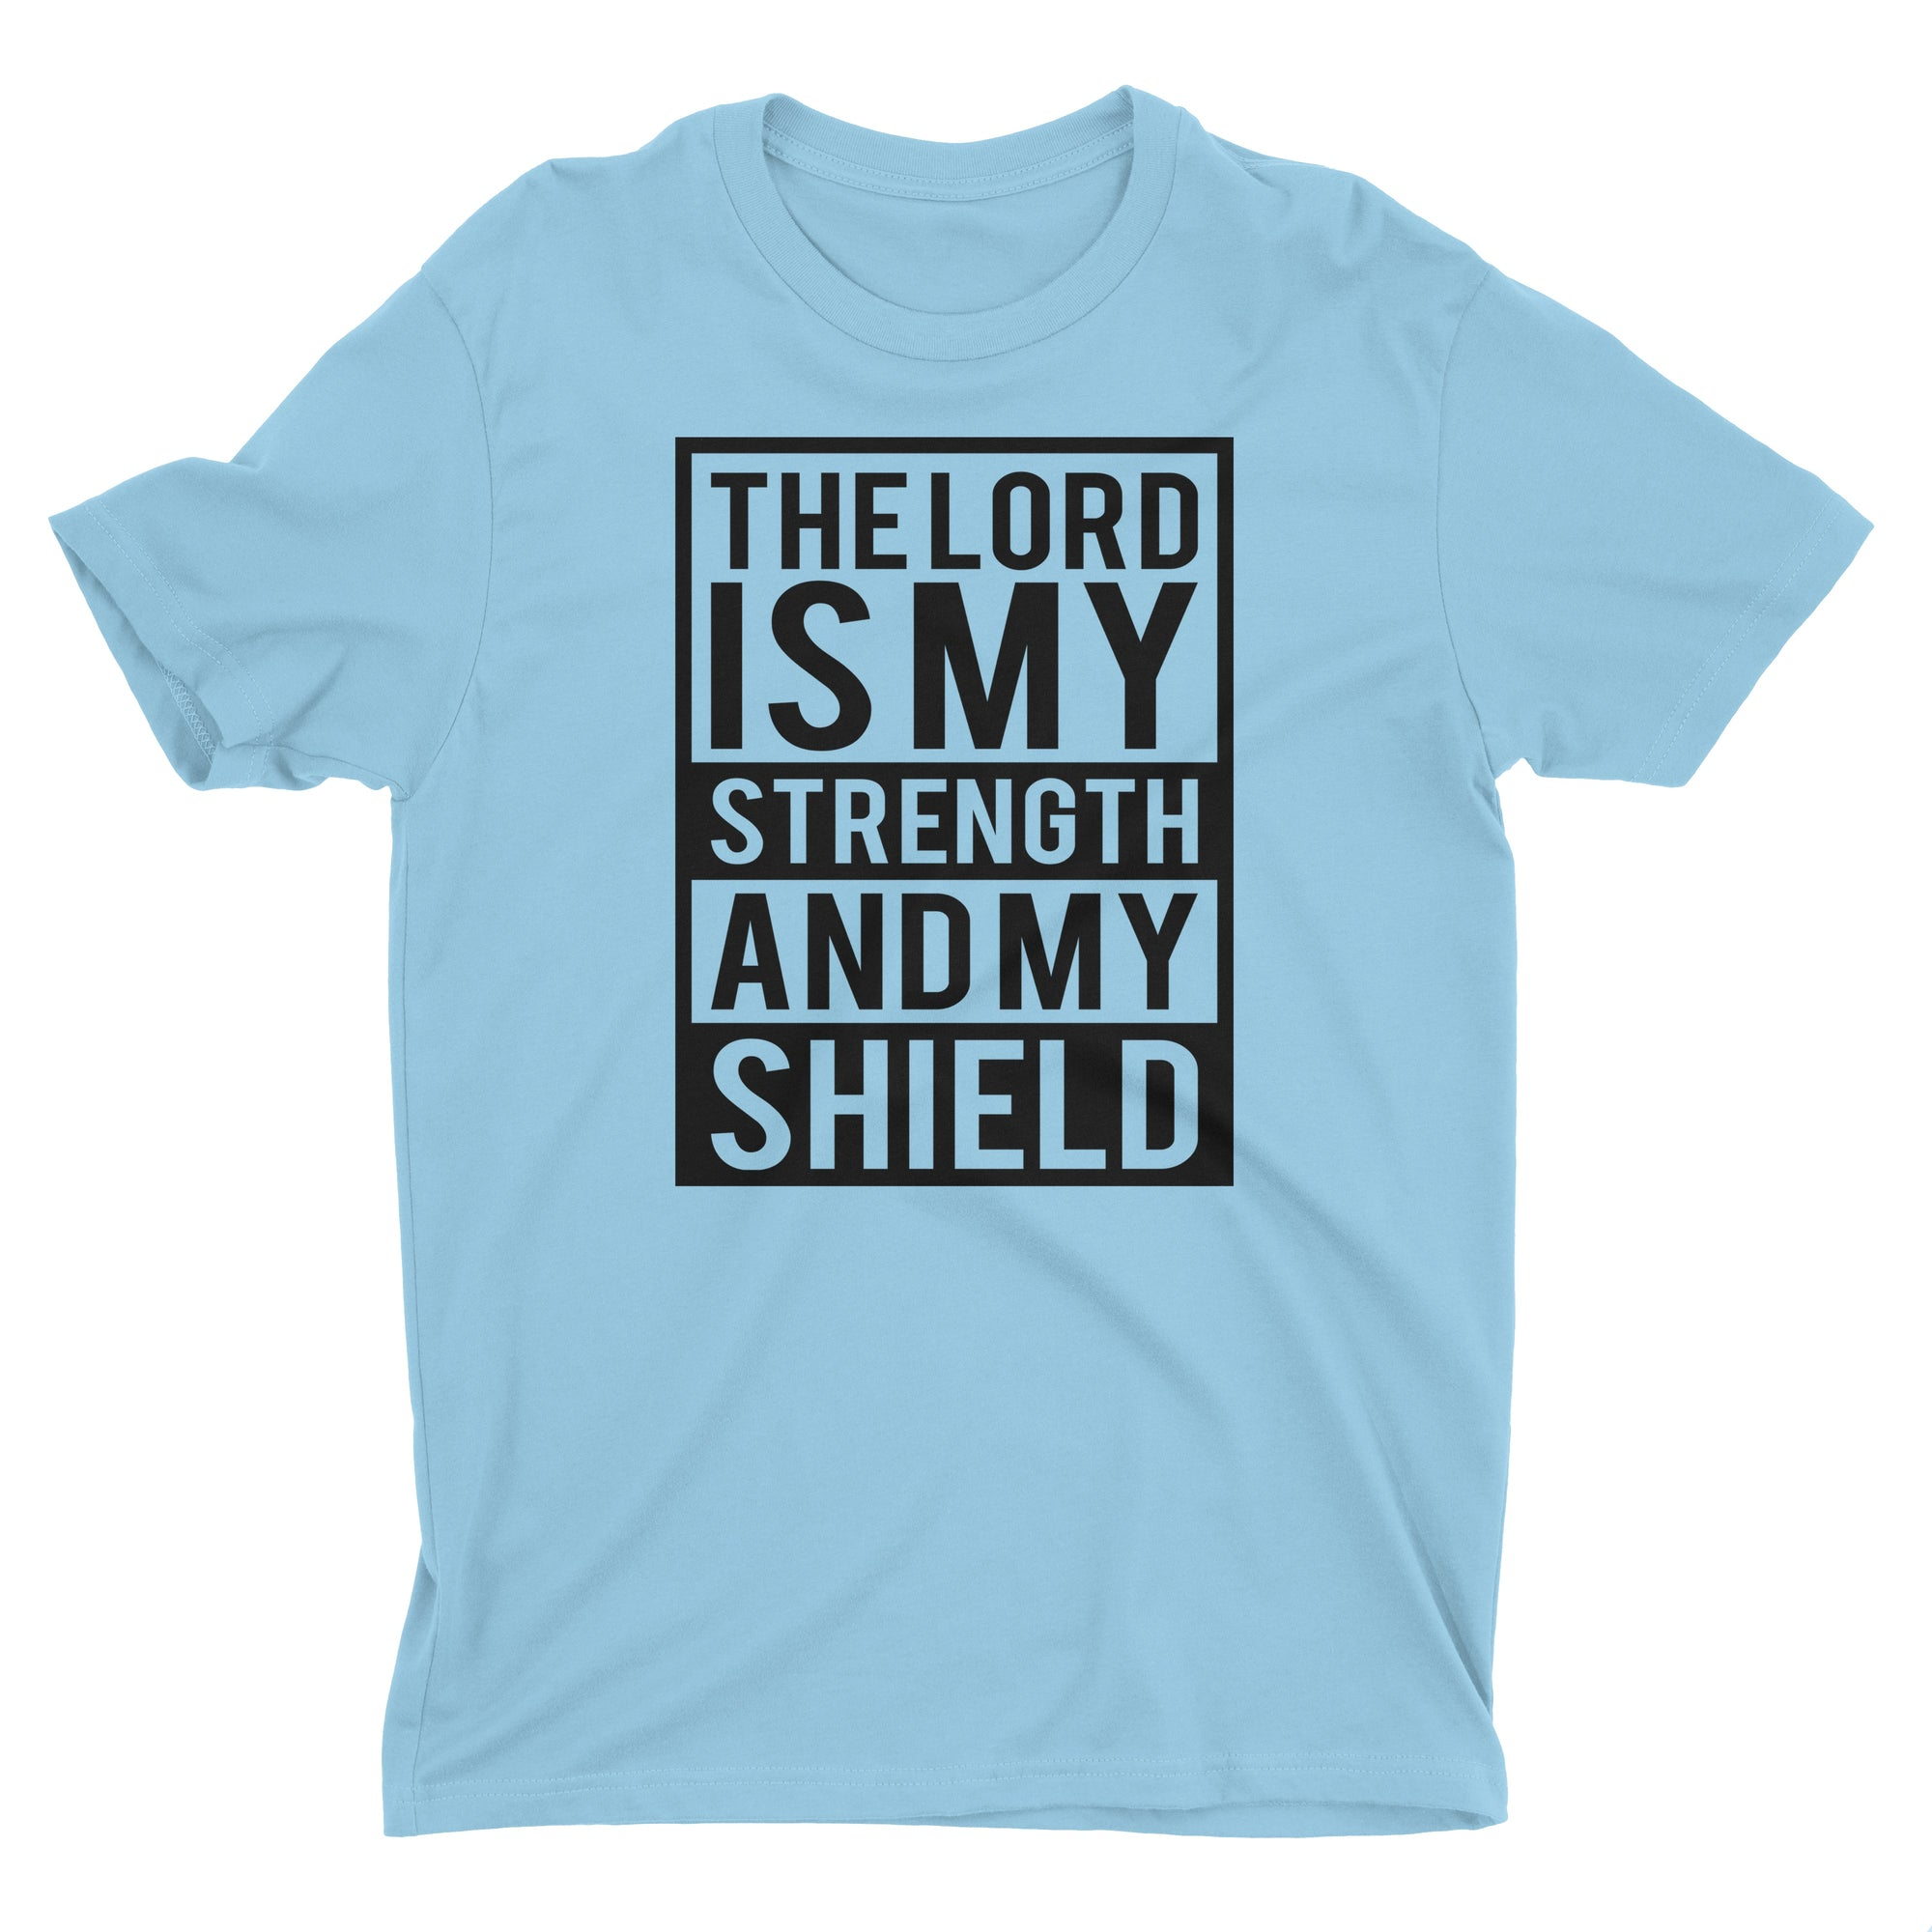 The Lord Is My Strength And My Shield T-Shirt for Men